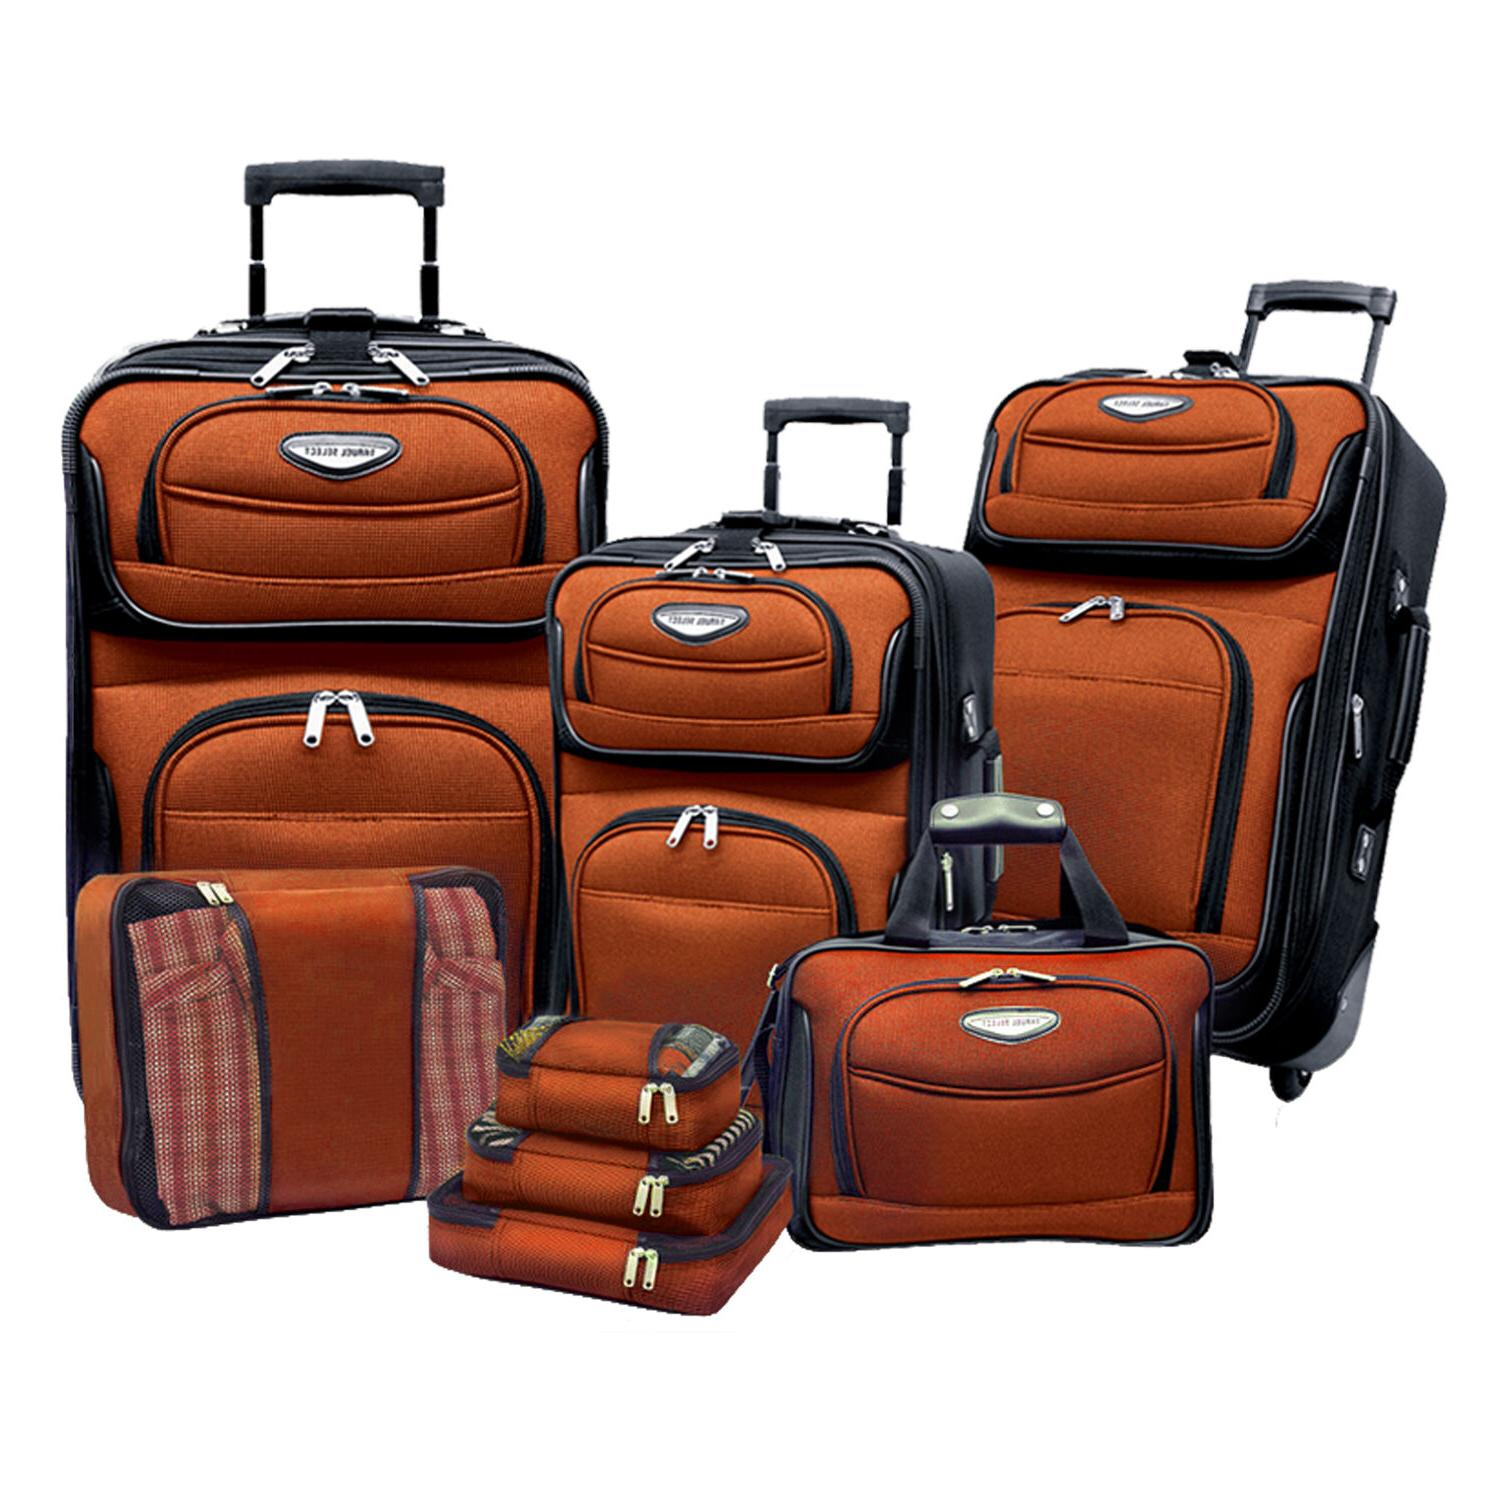 Amsterdam 8-Piece Light Rolling Luggage Bag Travel